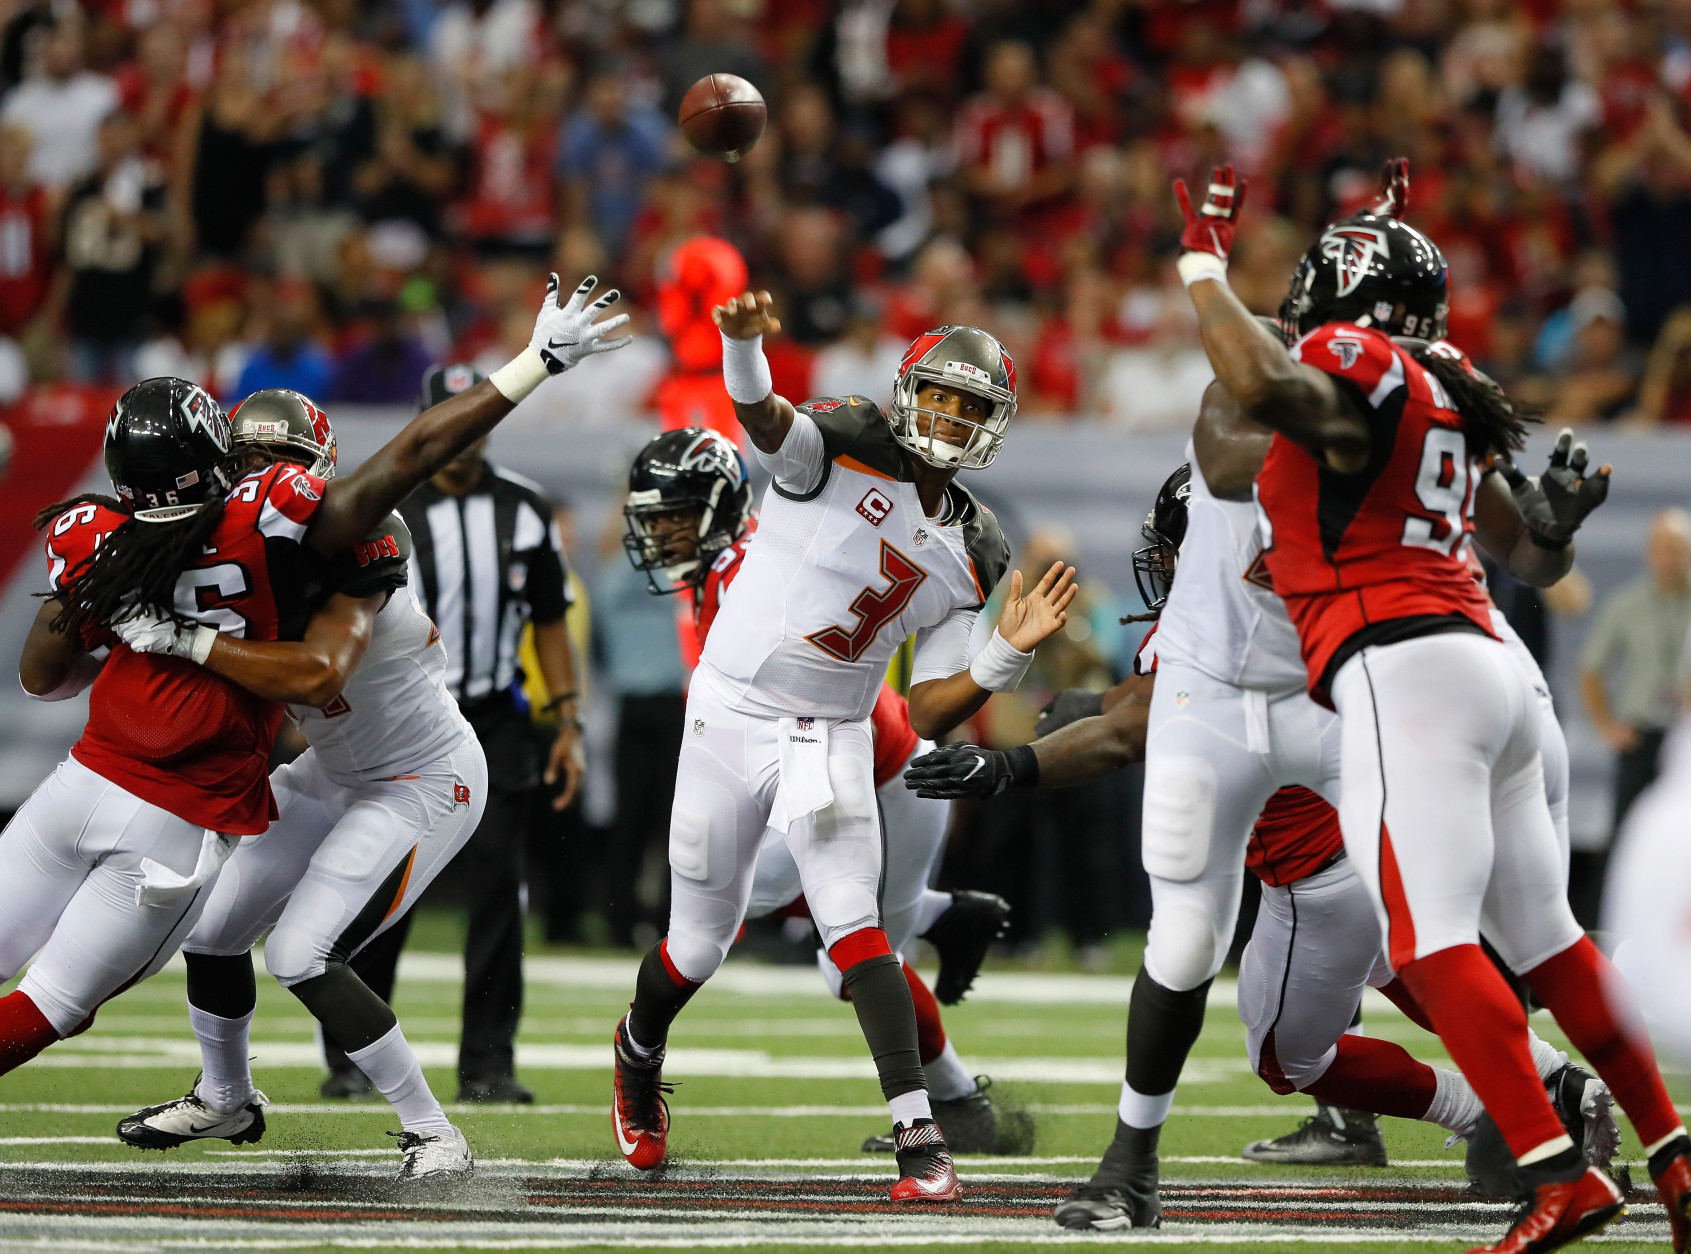 ATLANTA, GA - SEPTEMBER 11:  Jameis Winston #3 of the Tampa Bay Buccaneers passes against the Atlanta Falcons at Georgia Dome on September 11, 2016 in Atlanta, Georgia.  (Photo by Kevin C. Cox/Getty Images)